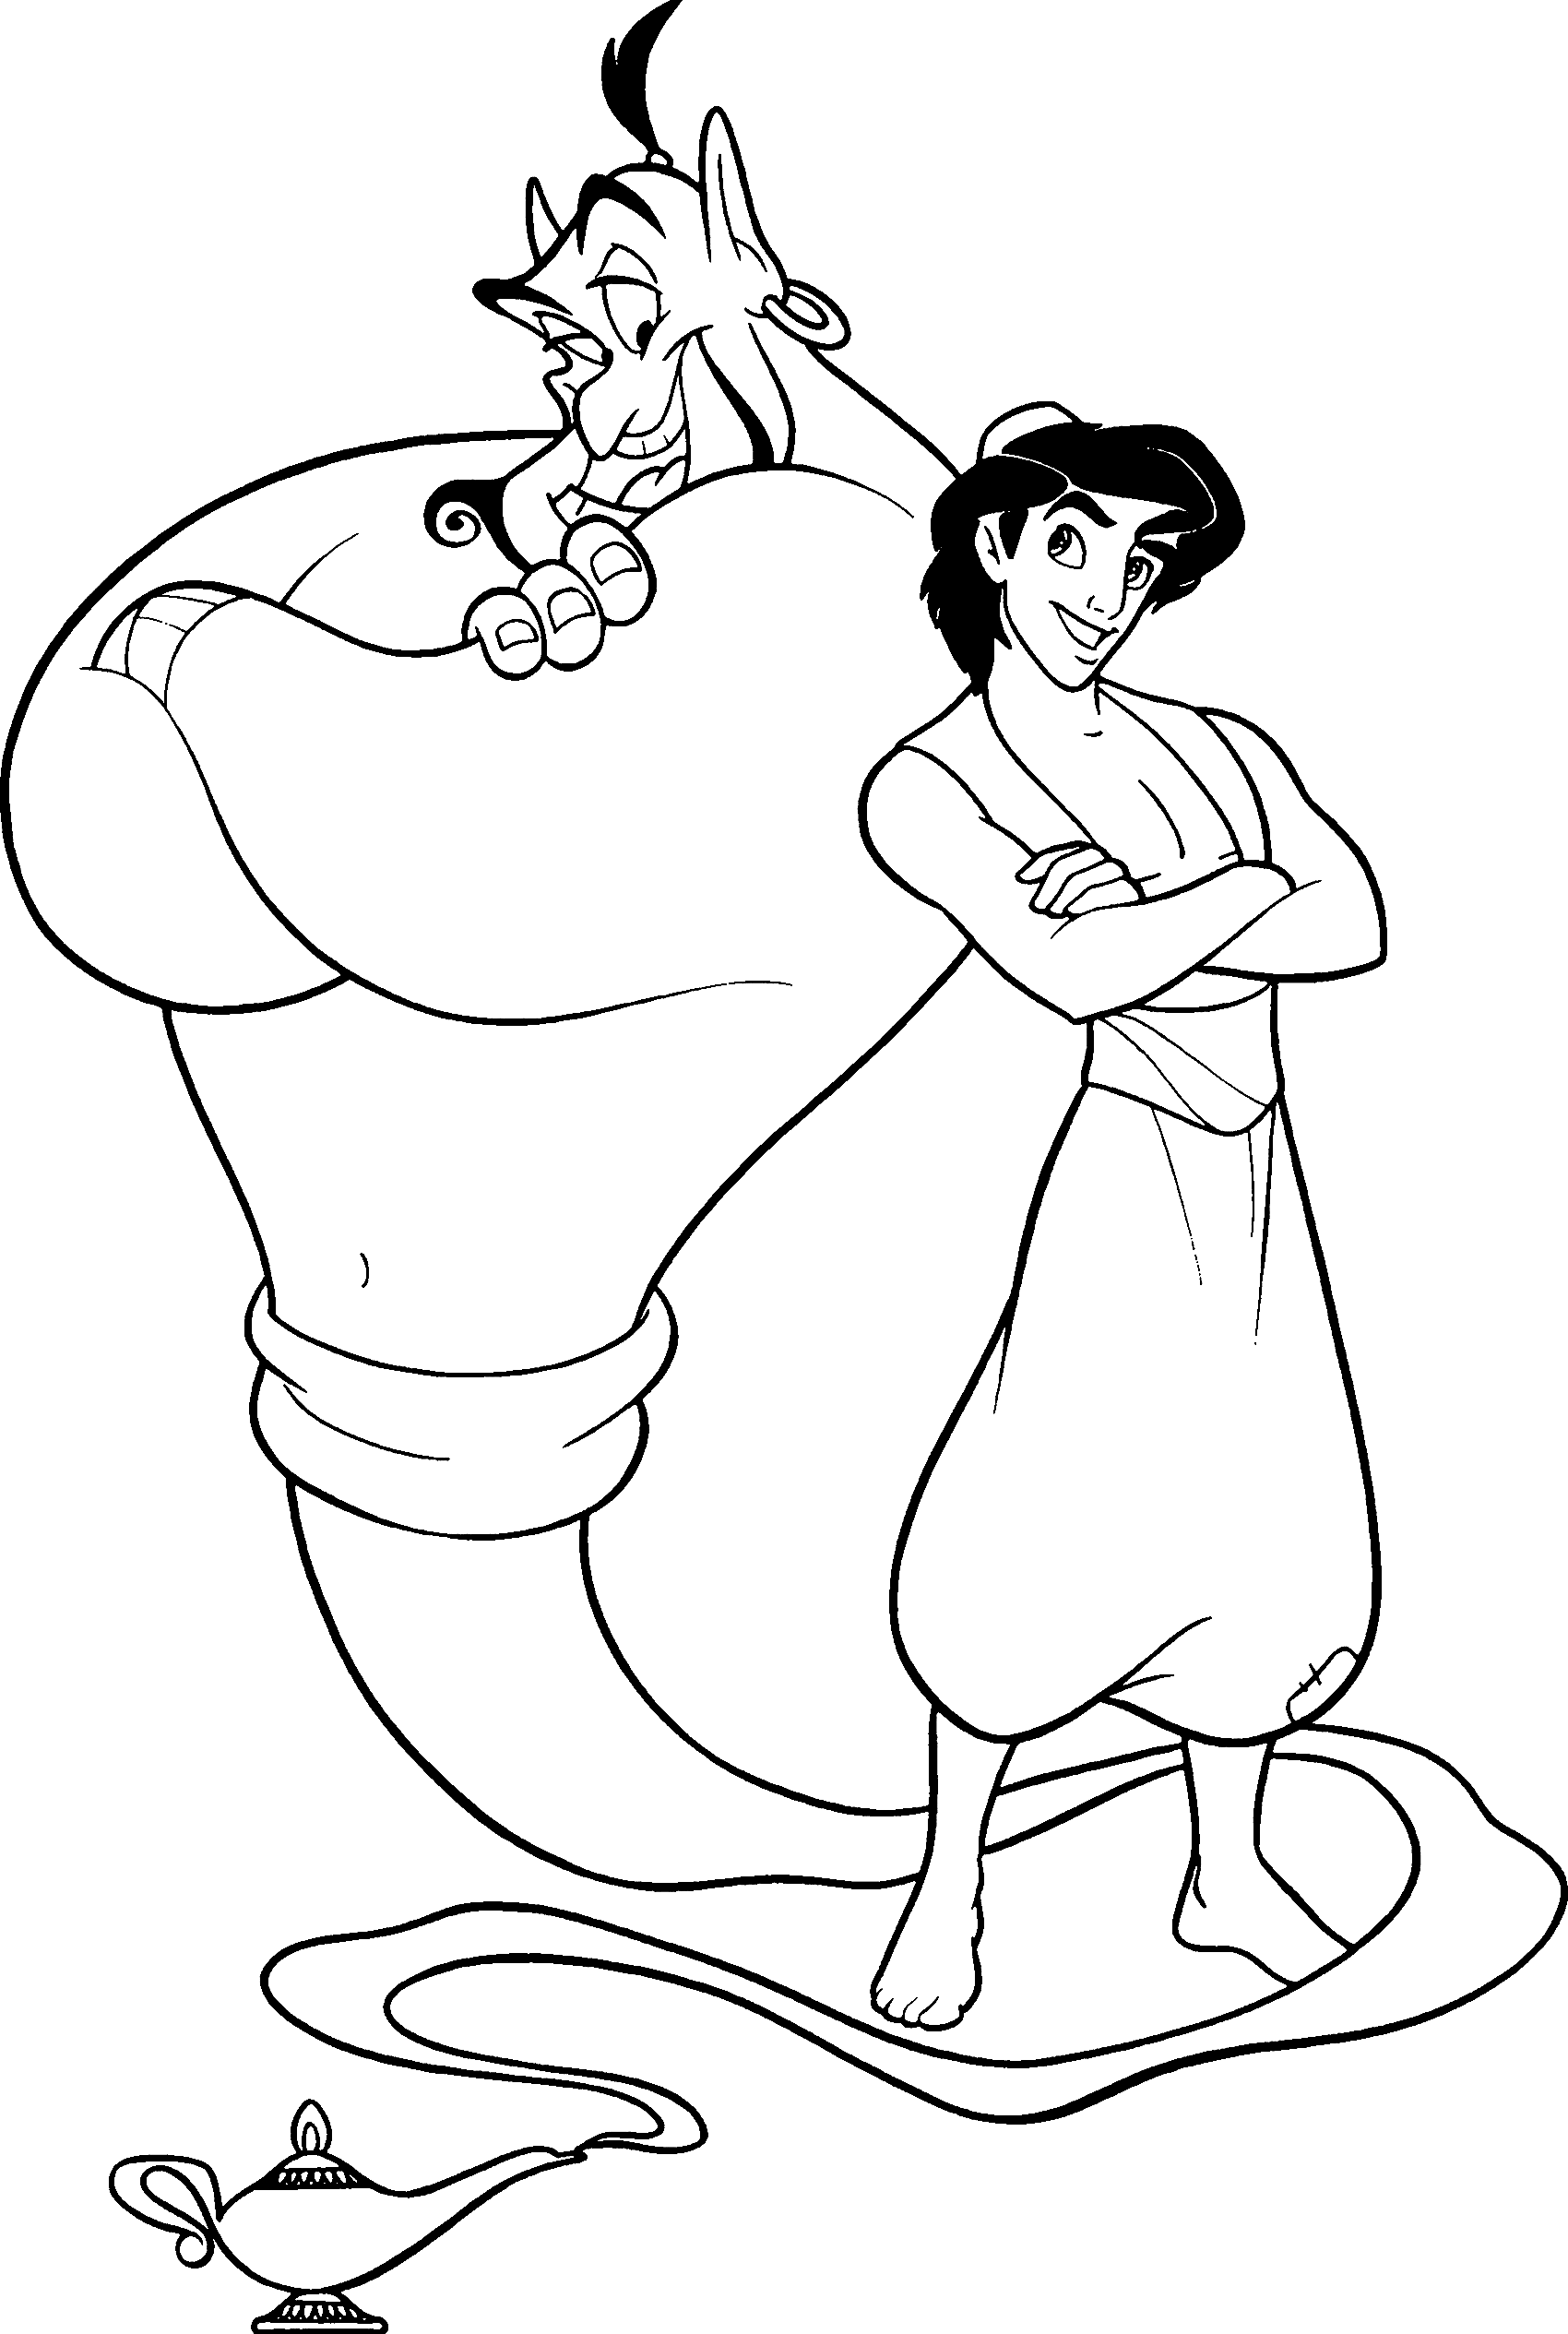 Aladdin and Genie Coloring Page